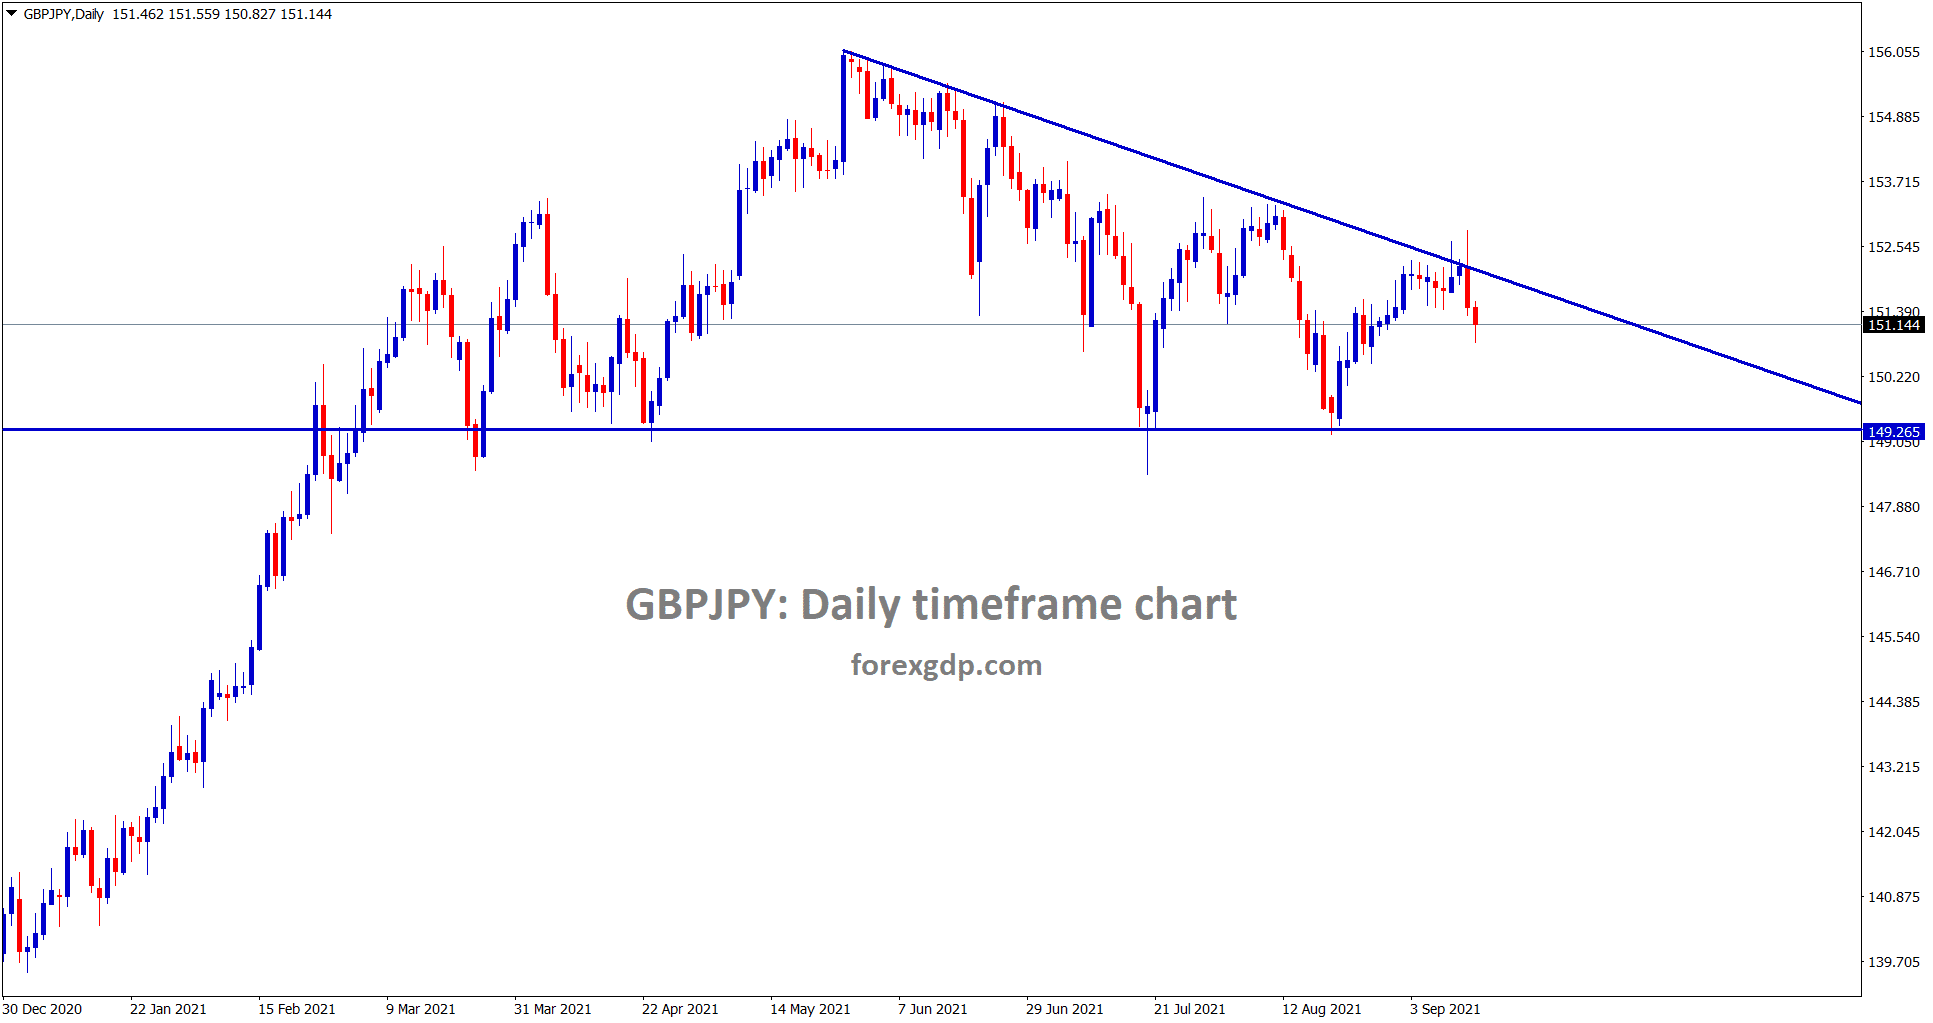 GBPJPY is falling from the top looks like Descending Triangle pattern